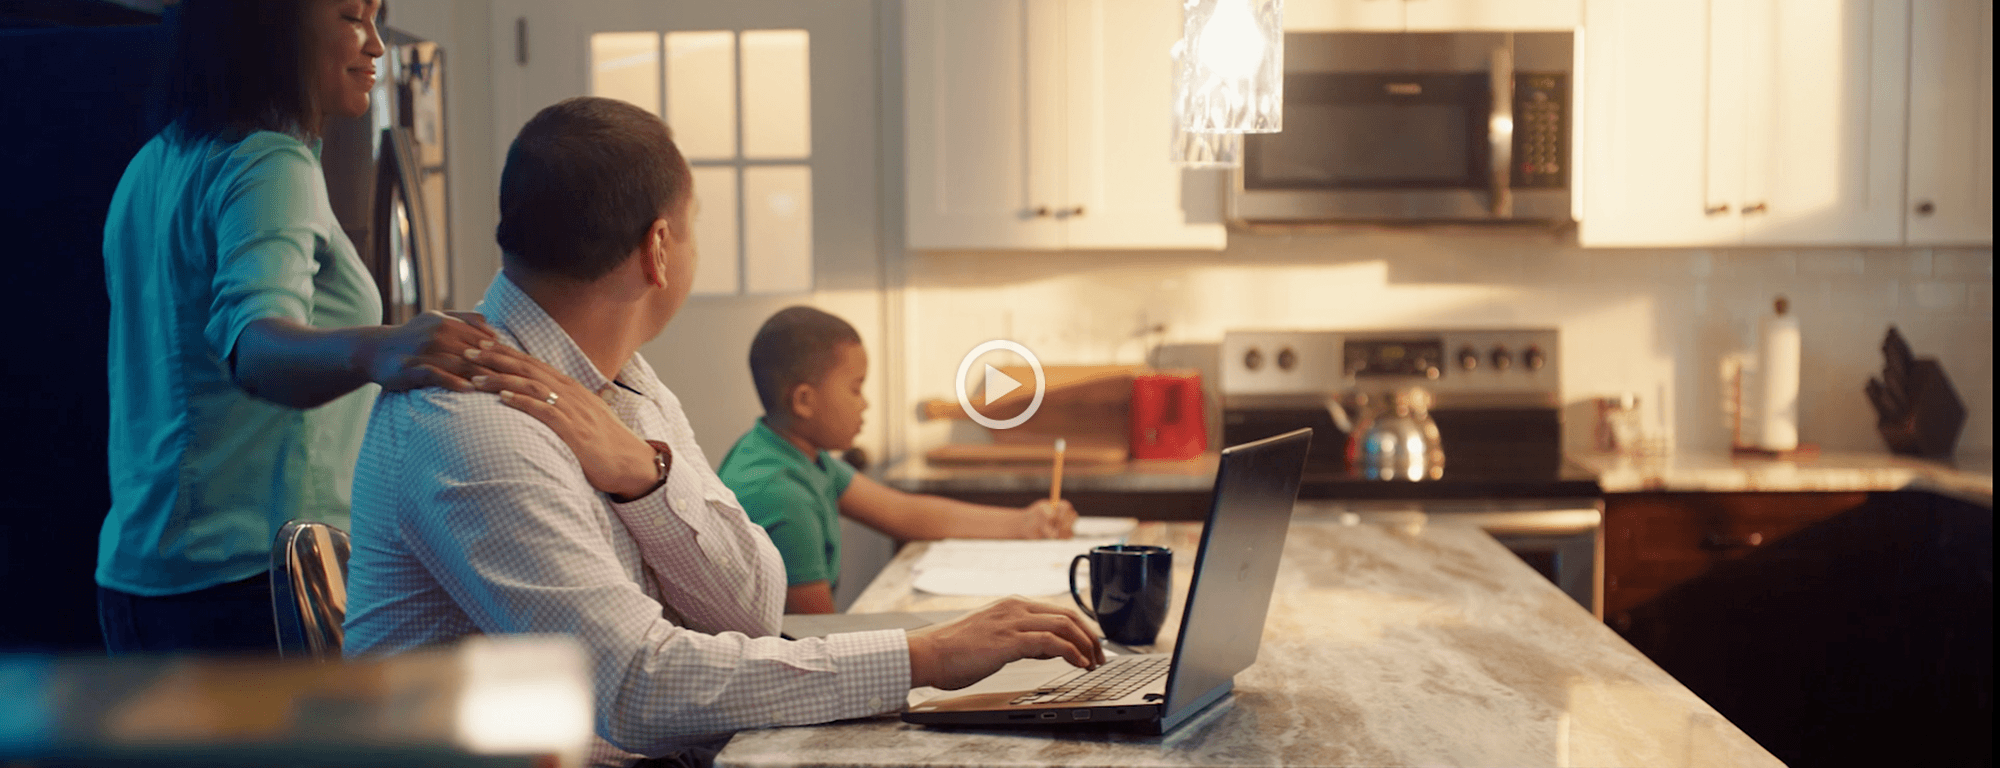 man on computer with family in kitchen